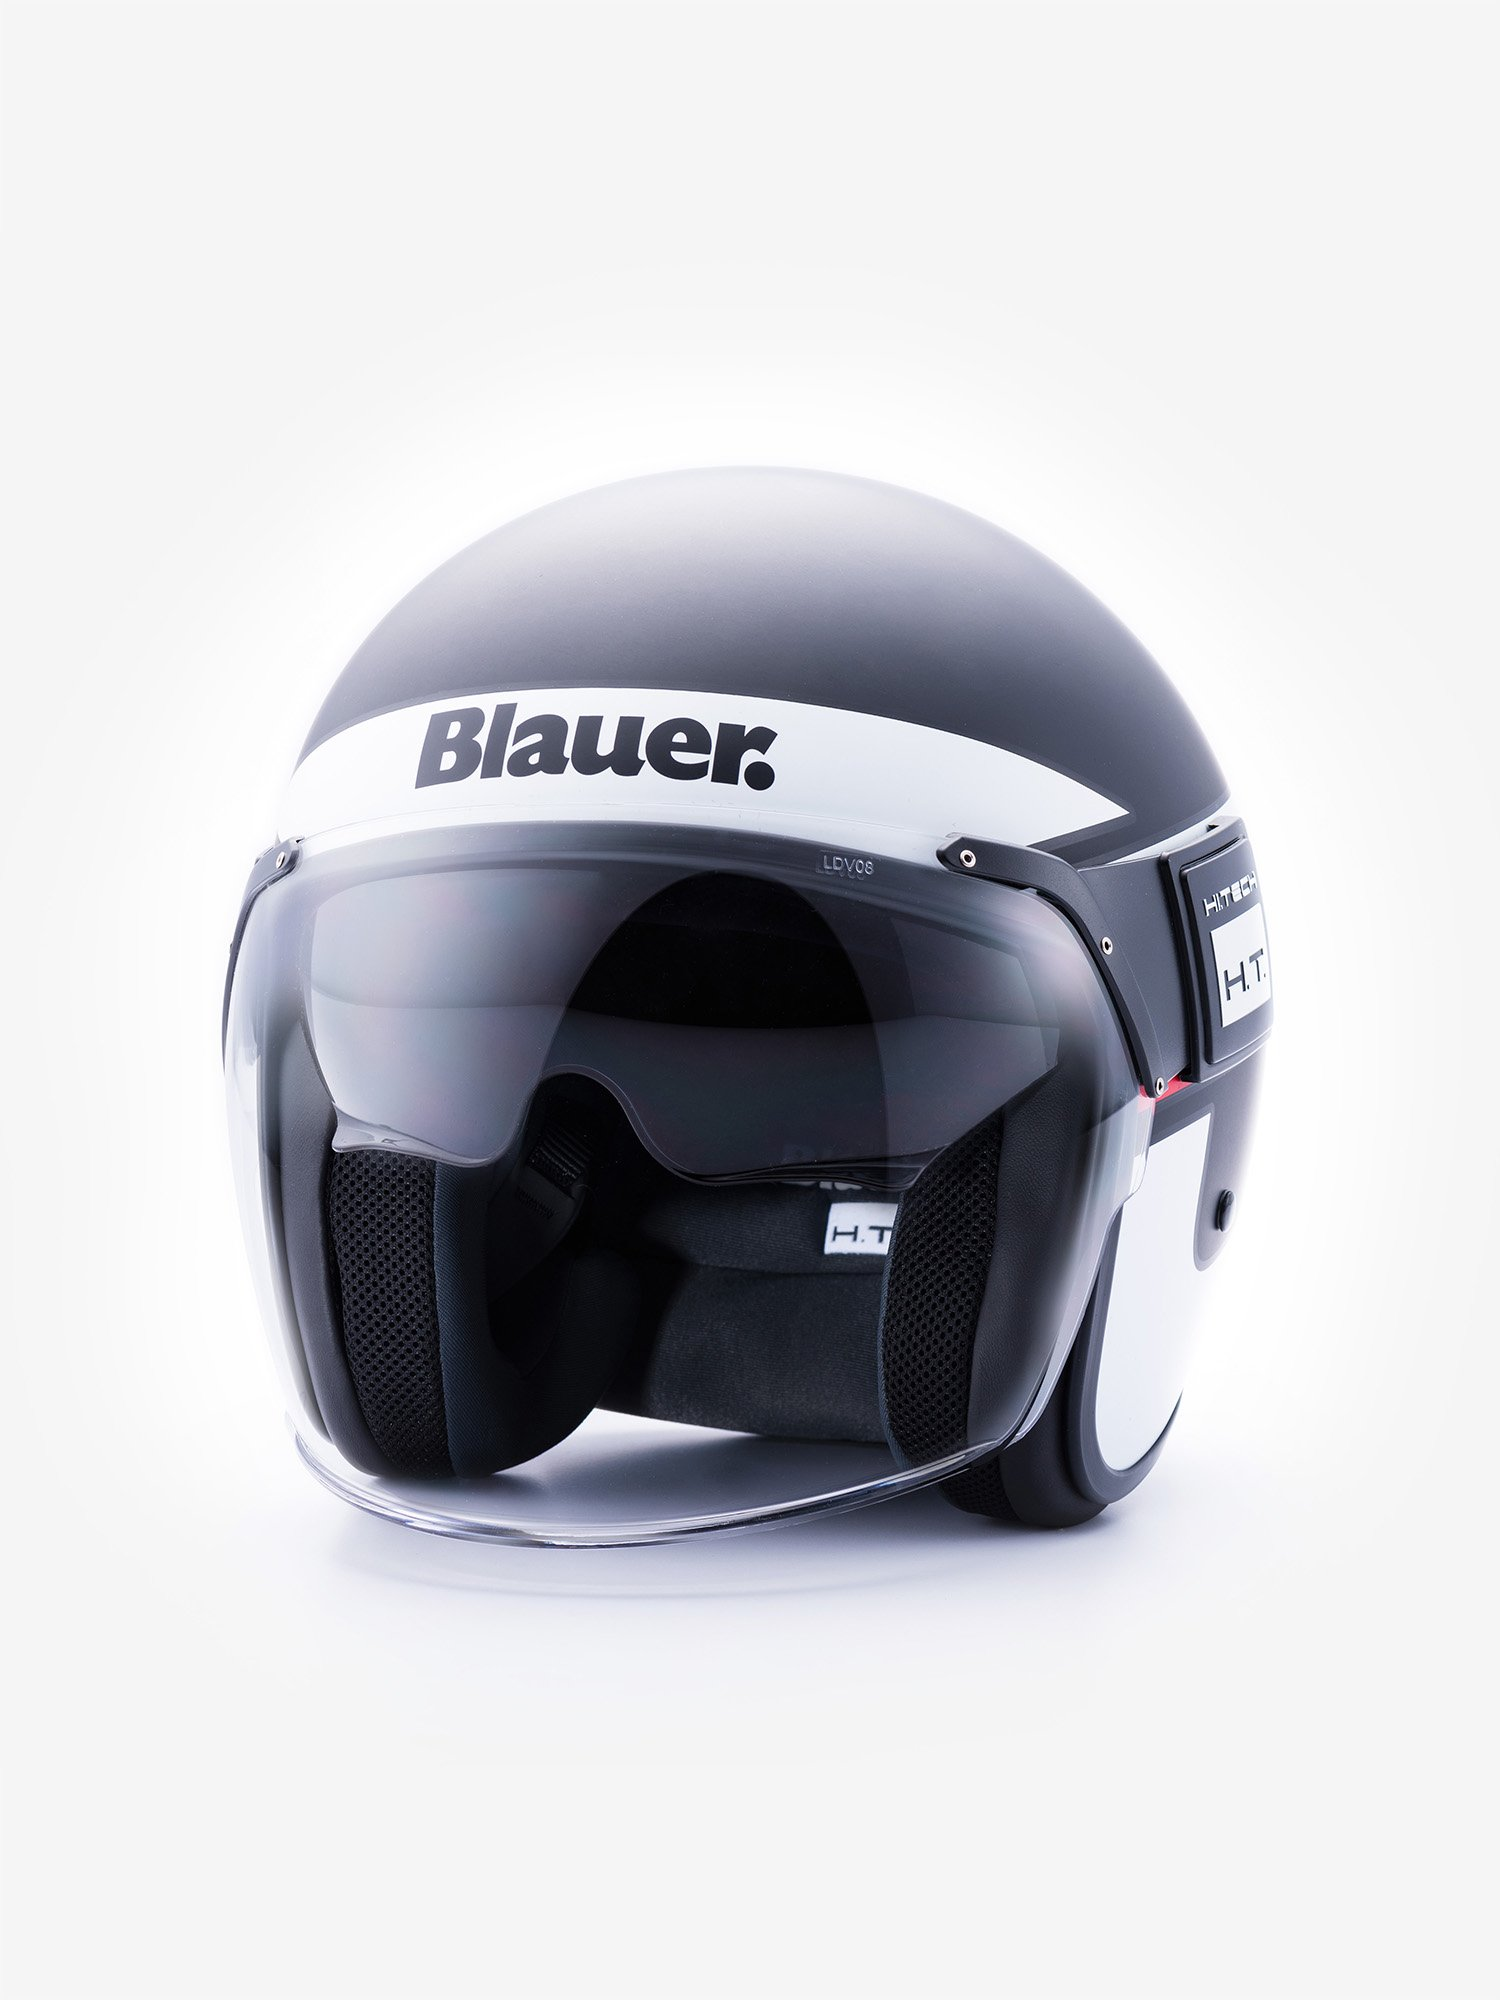 Blauer - POD STRIPES DOUBLE VISOR - Black Matt / Red - Blauer